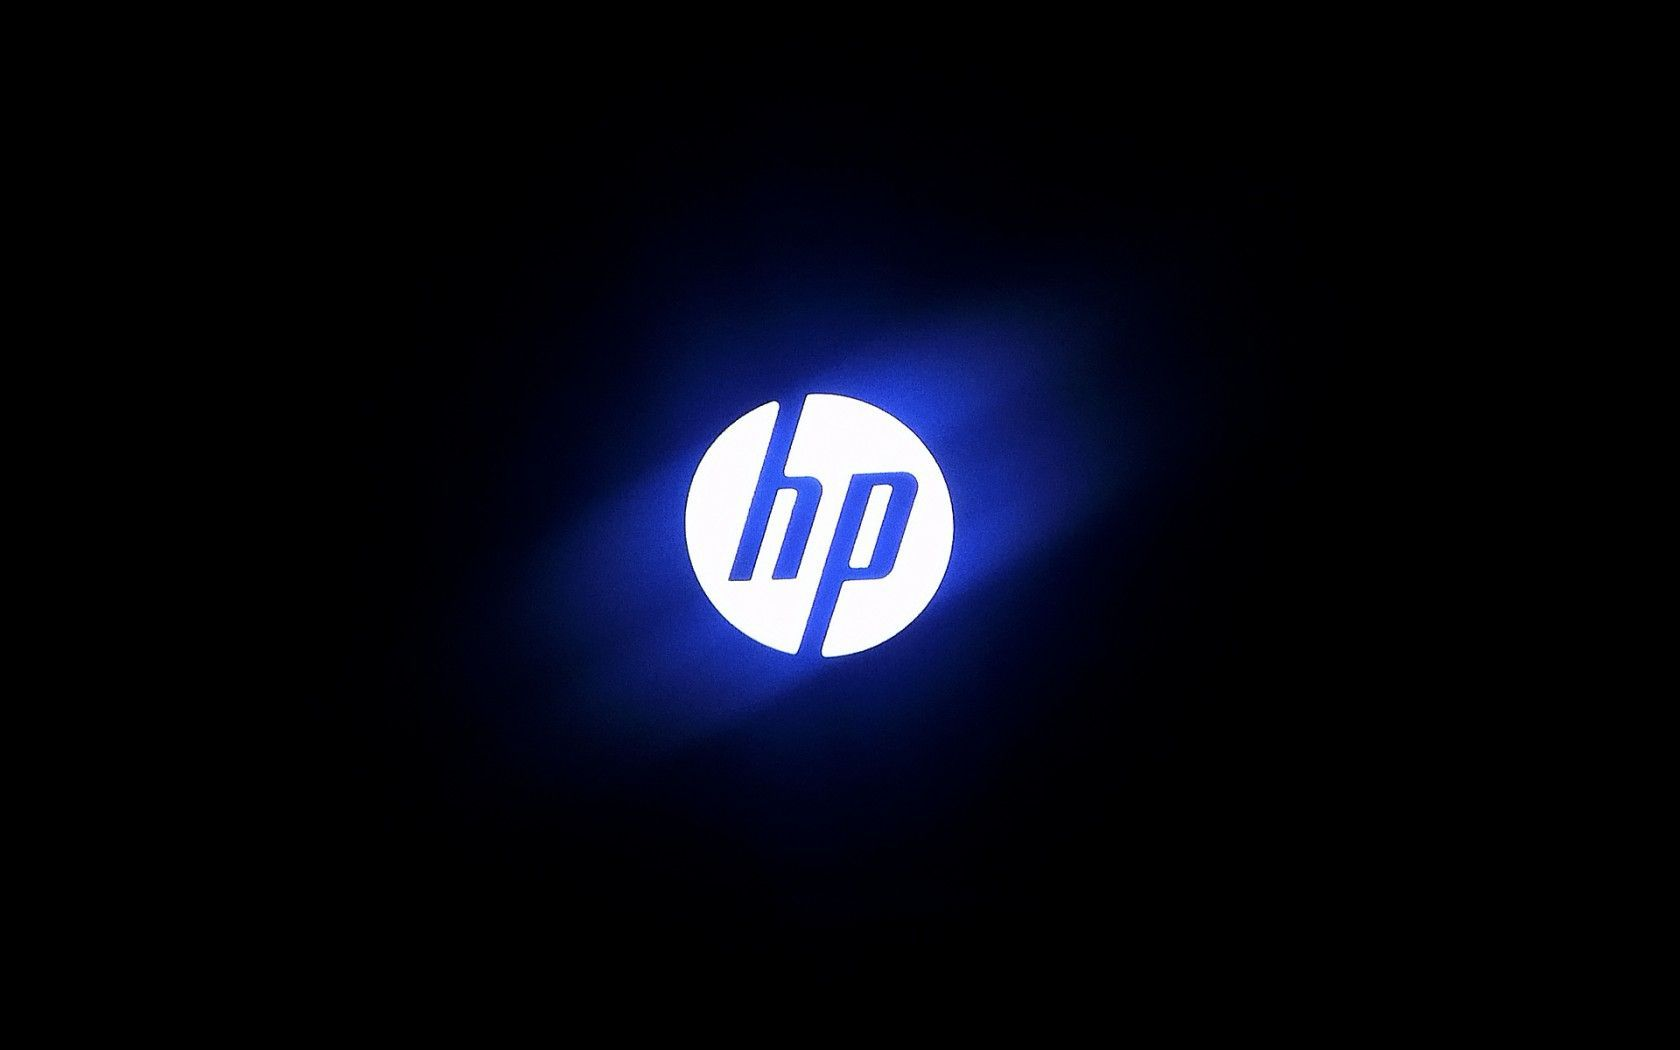 Desktop Background Photos Hp Support Forum 1680 1050 Backgrounds For Hp Laptops 42 Wallpapers Ador Hp Logo Hd Wallpapers For Laptop Hd Wallpaper Desktop